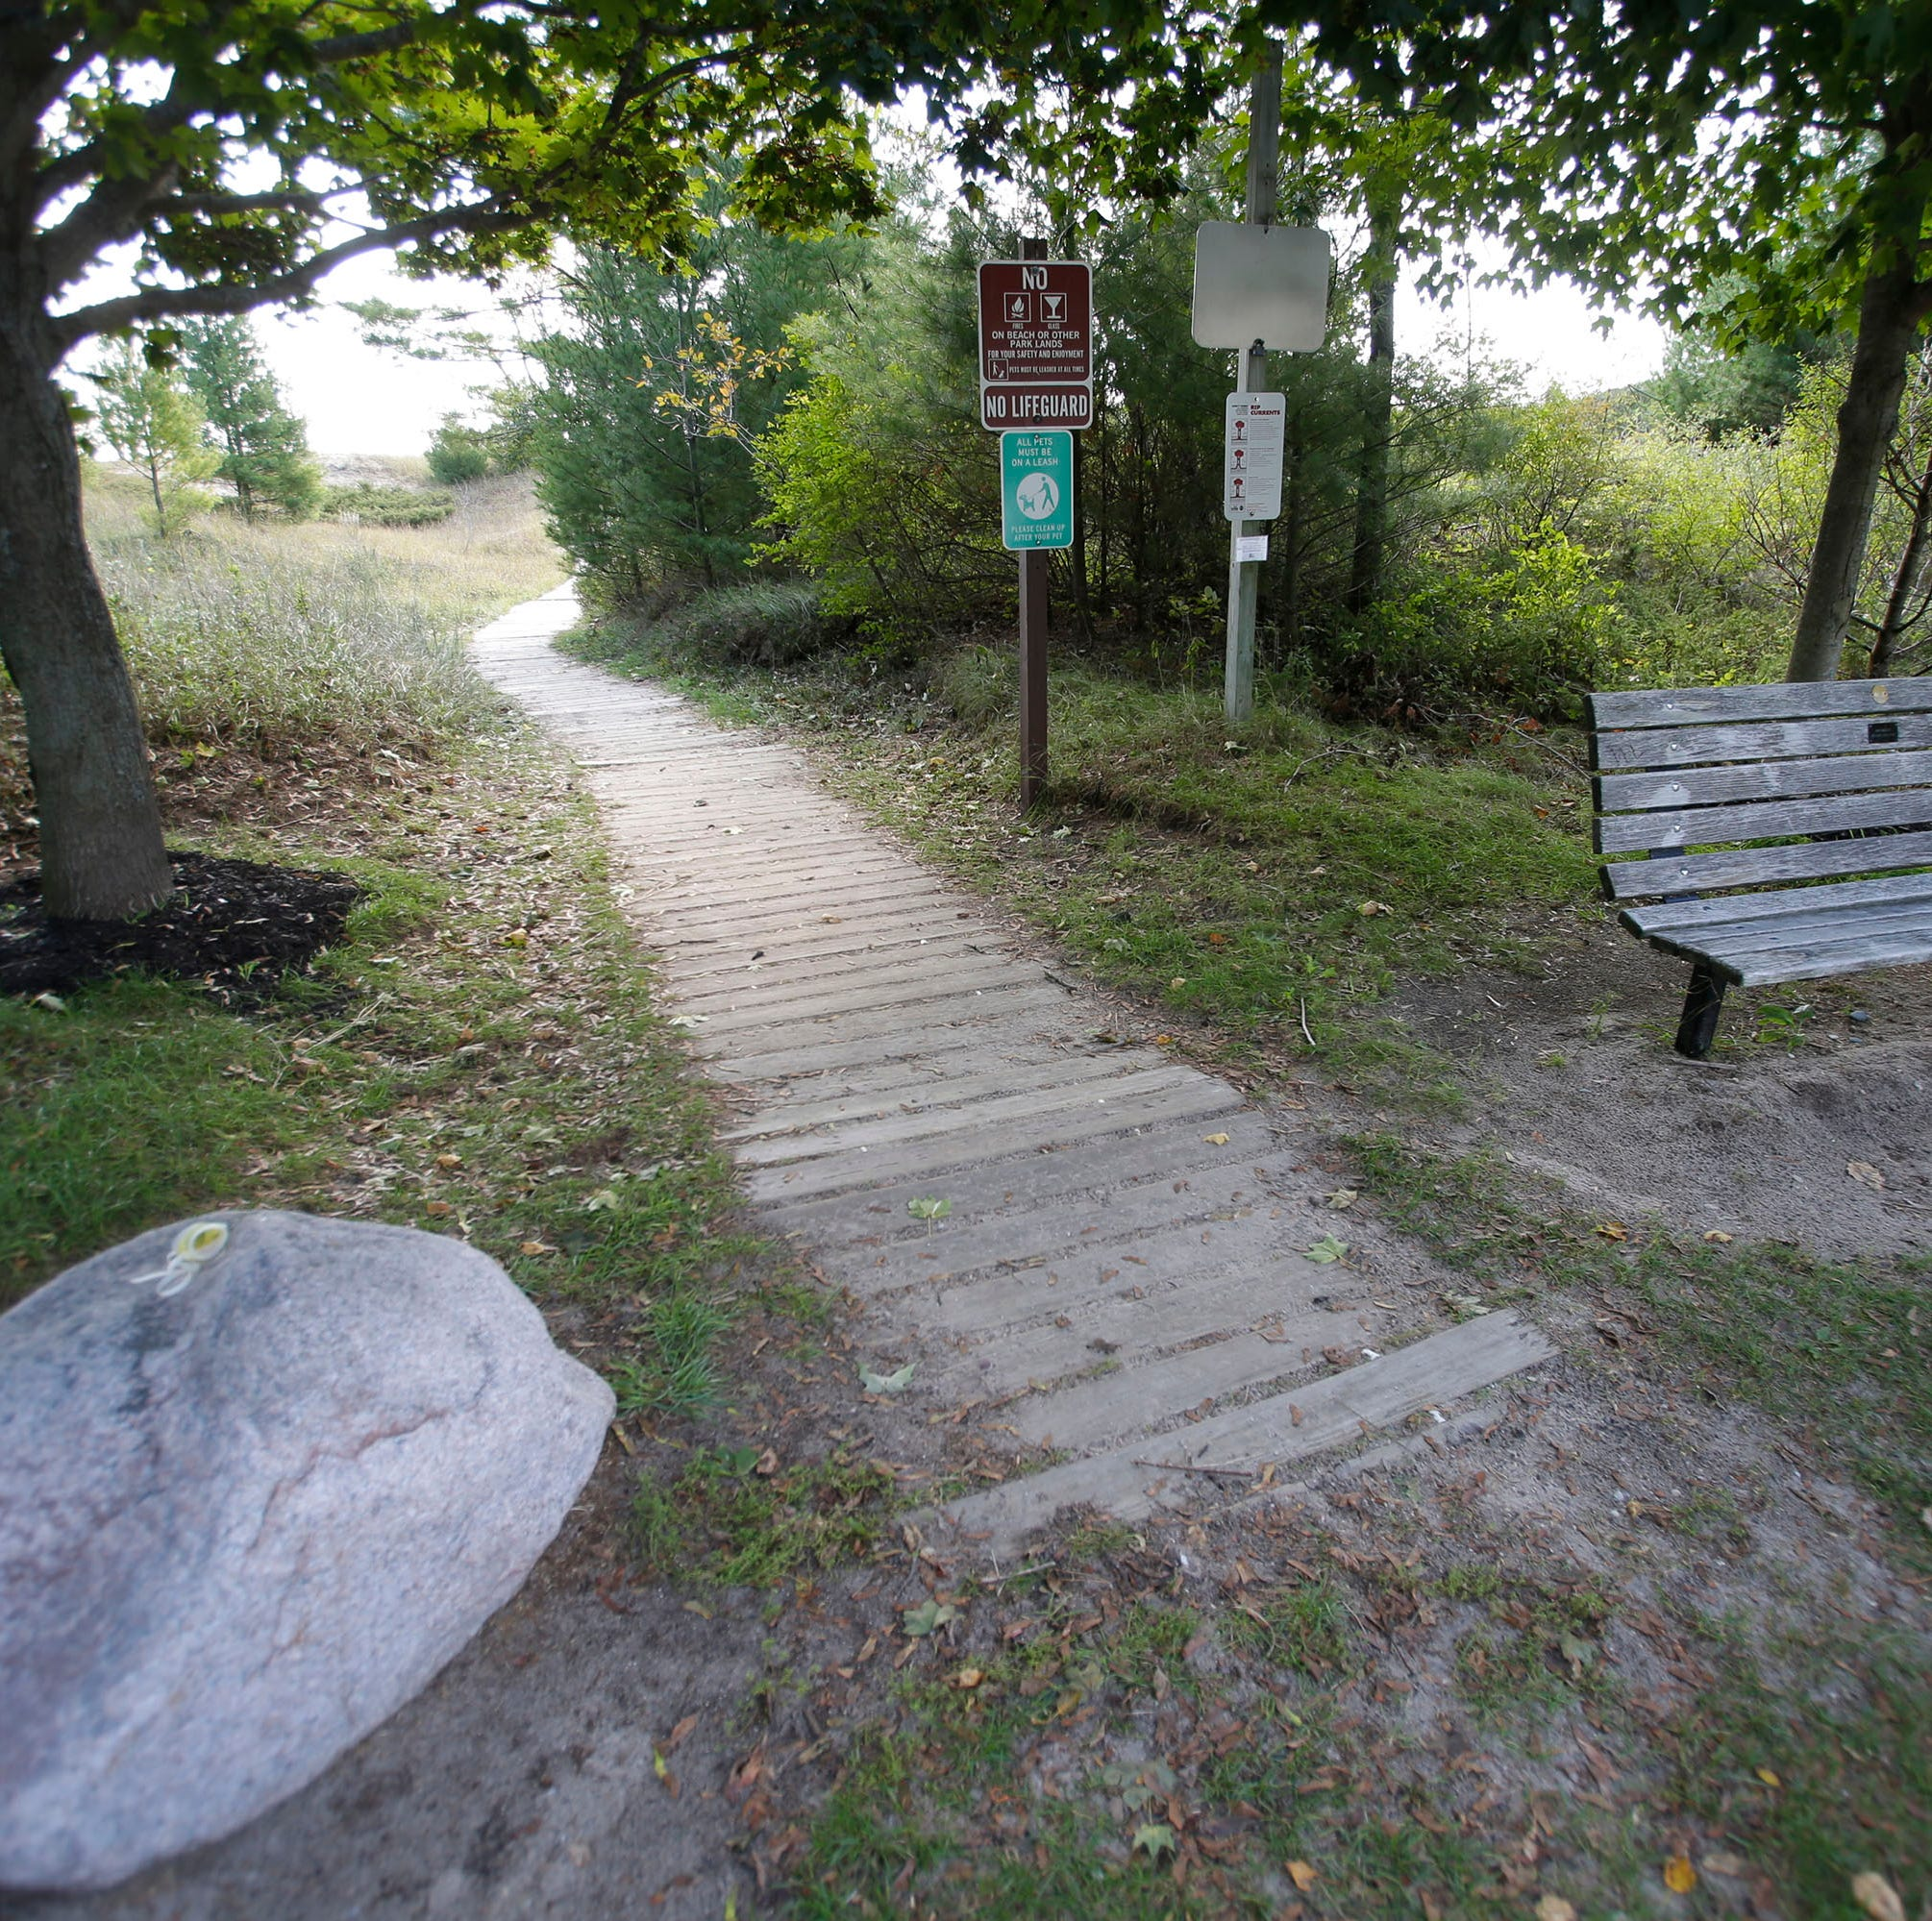 Kohler golf course lawsuits: Where they stand in Sheboygan County Circuit Court